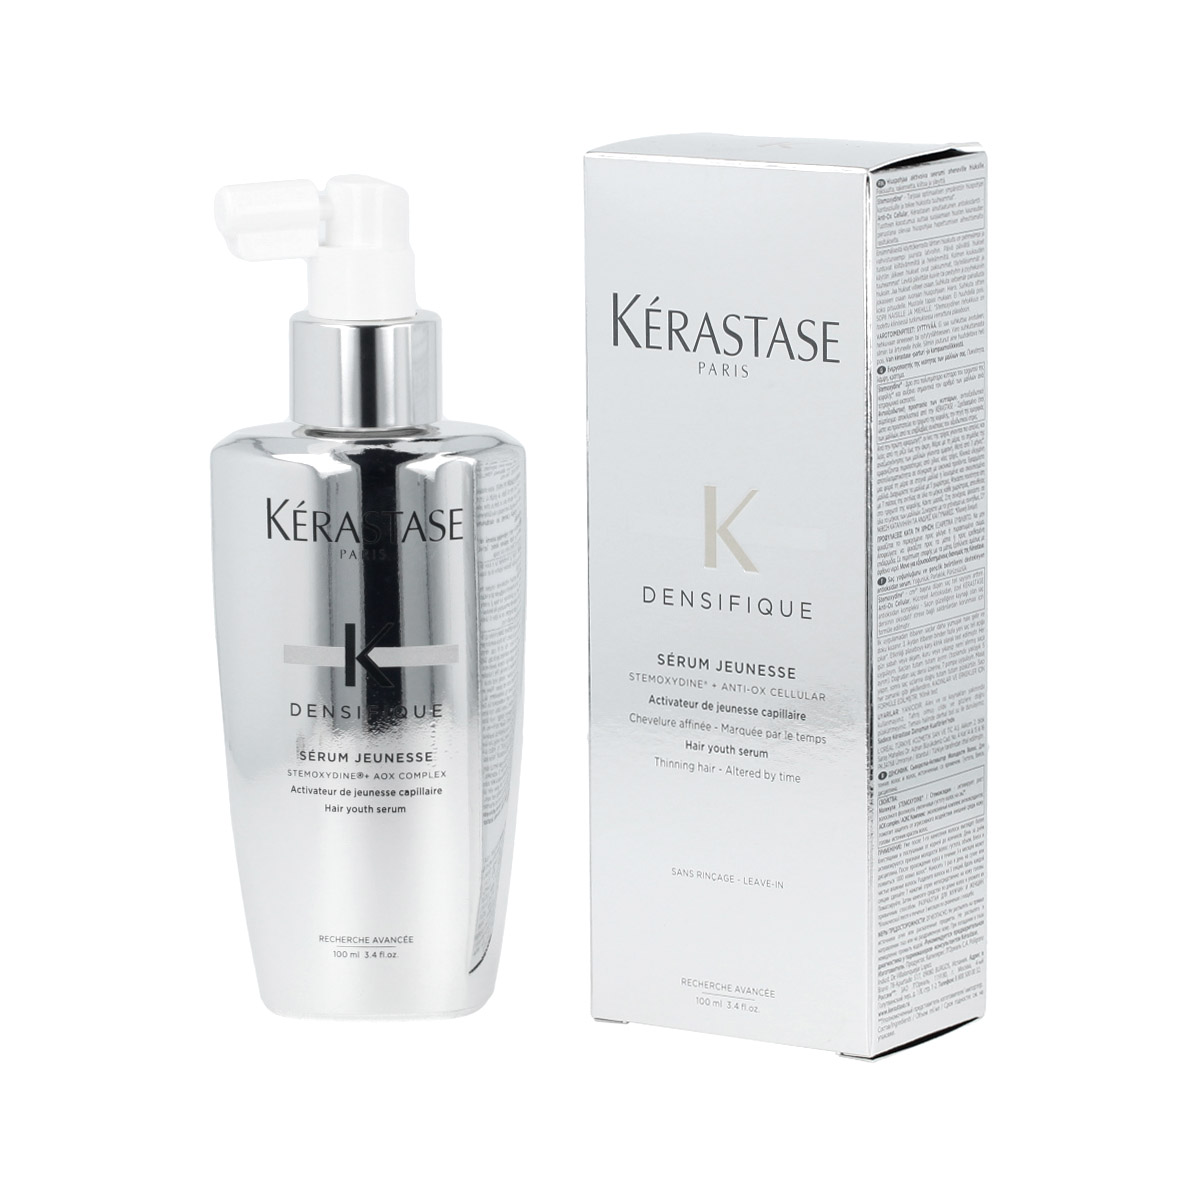 Kérastase Paris Kérastase Densifique Sérum Jeunesse Hair Youth Serum 100 ml 16305